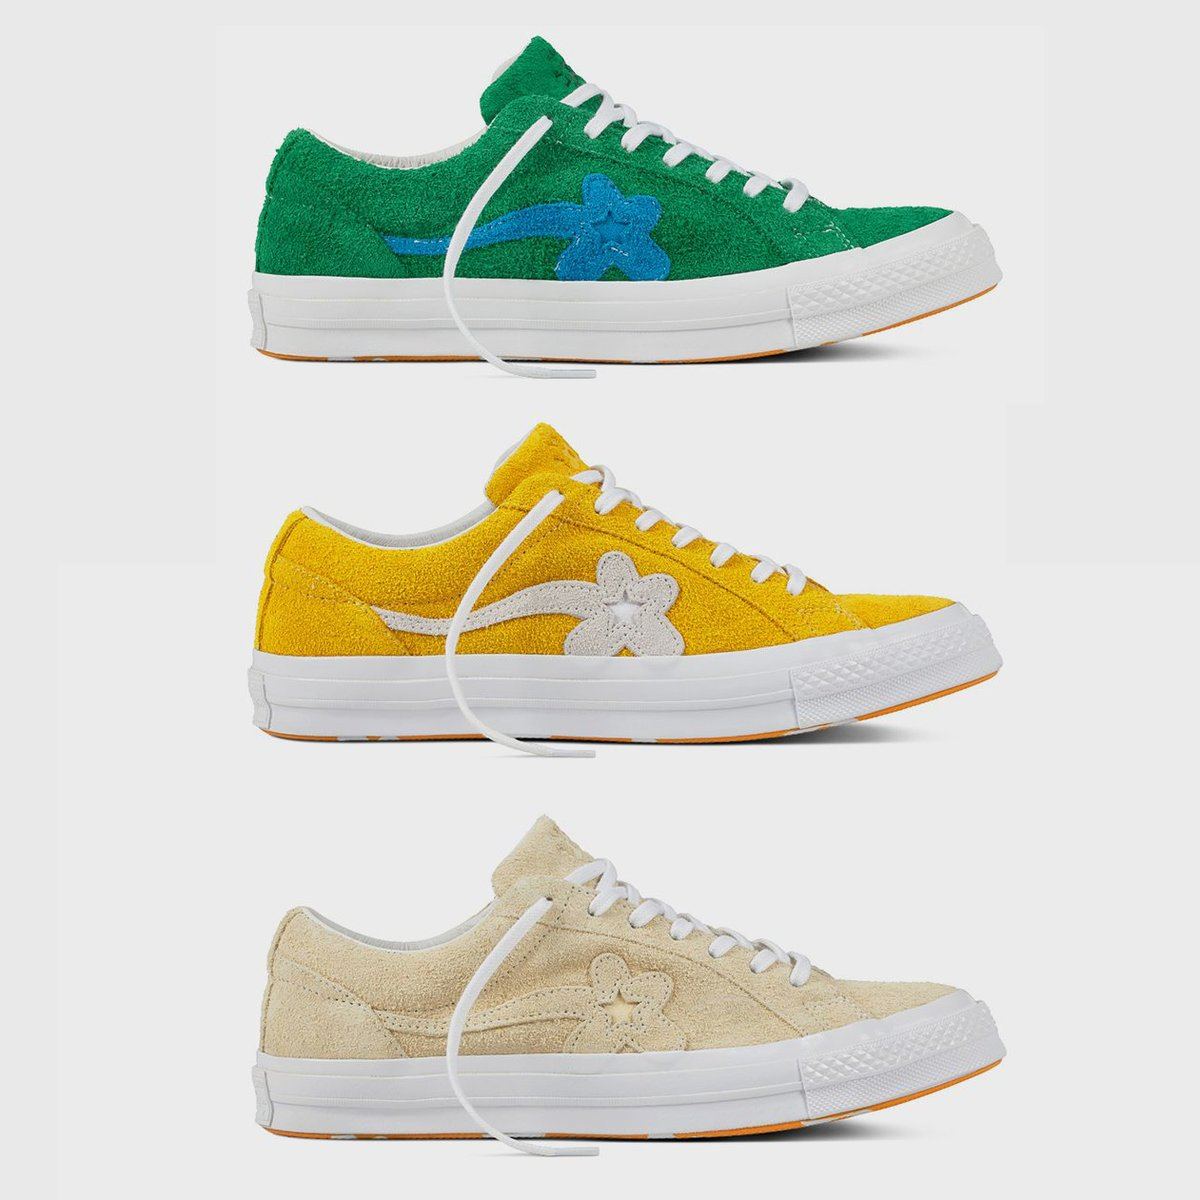 Now Available Tyler The Creator X Converse Golf Le Fleur Sneaker Shouts